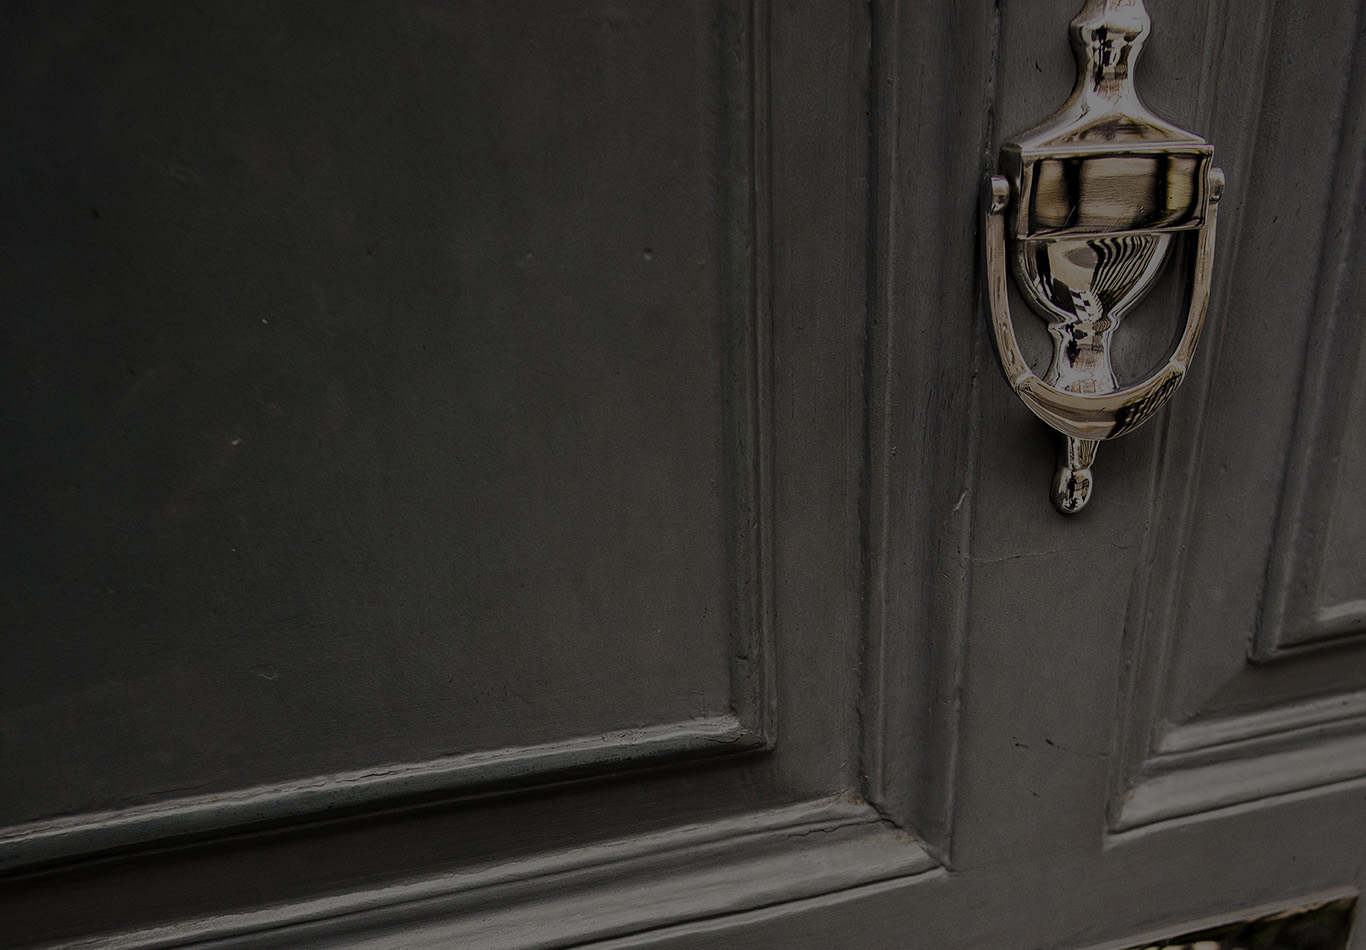 A close up of a door with a brass colored knob